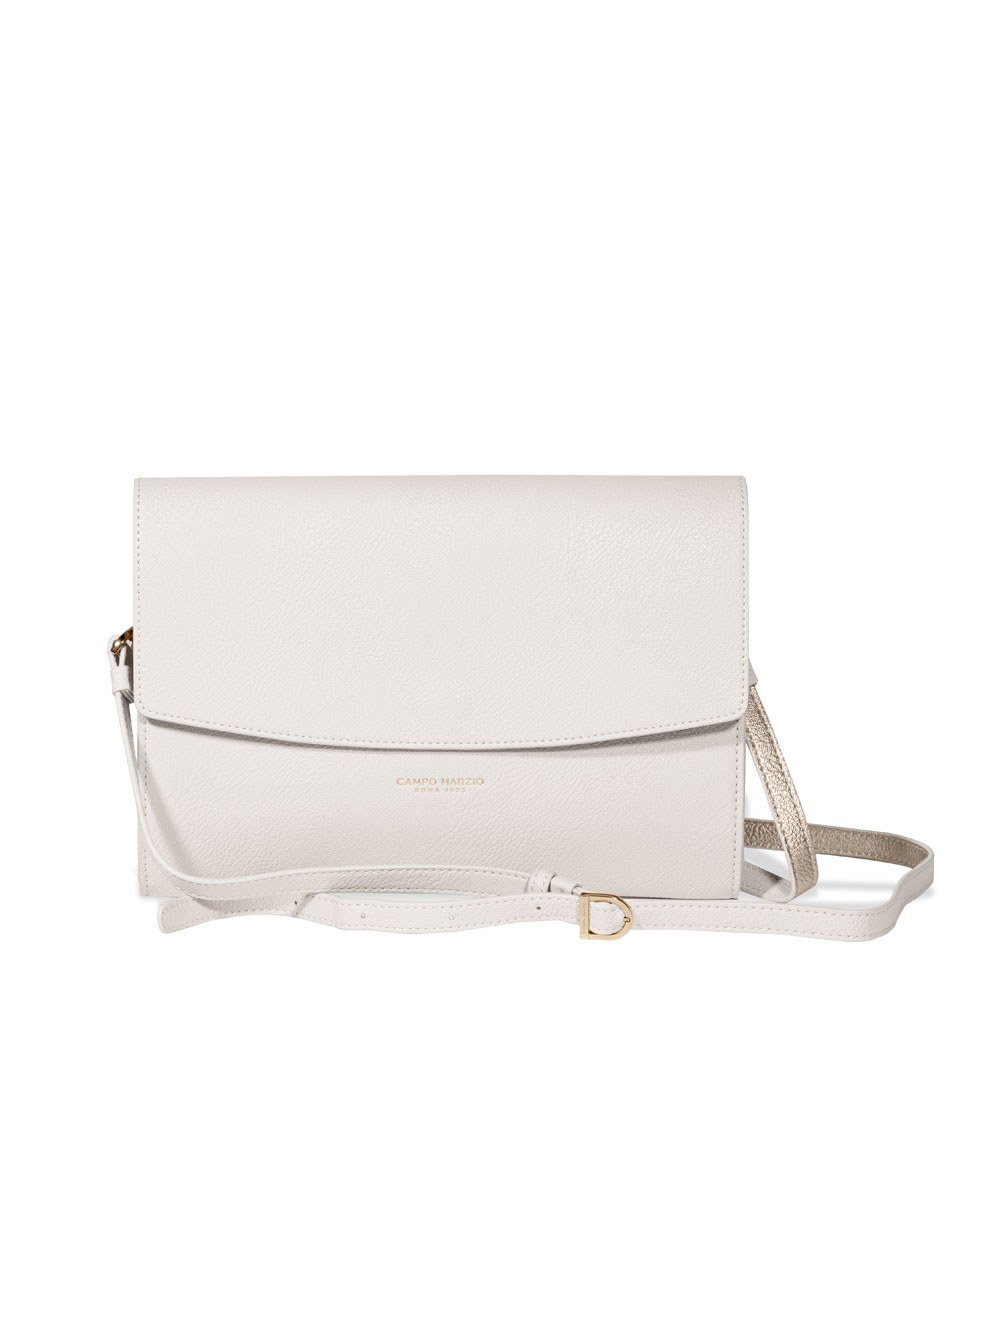 Clutch With Crossbody Strap - Off White